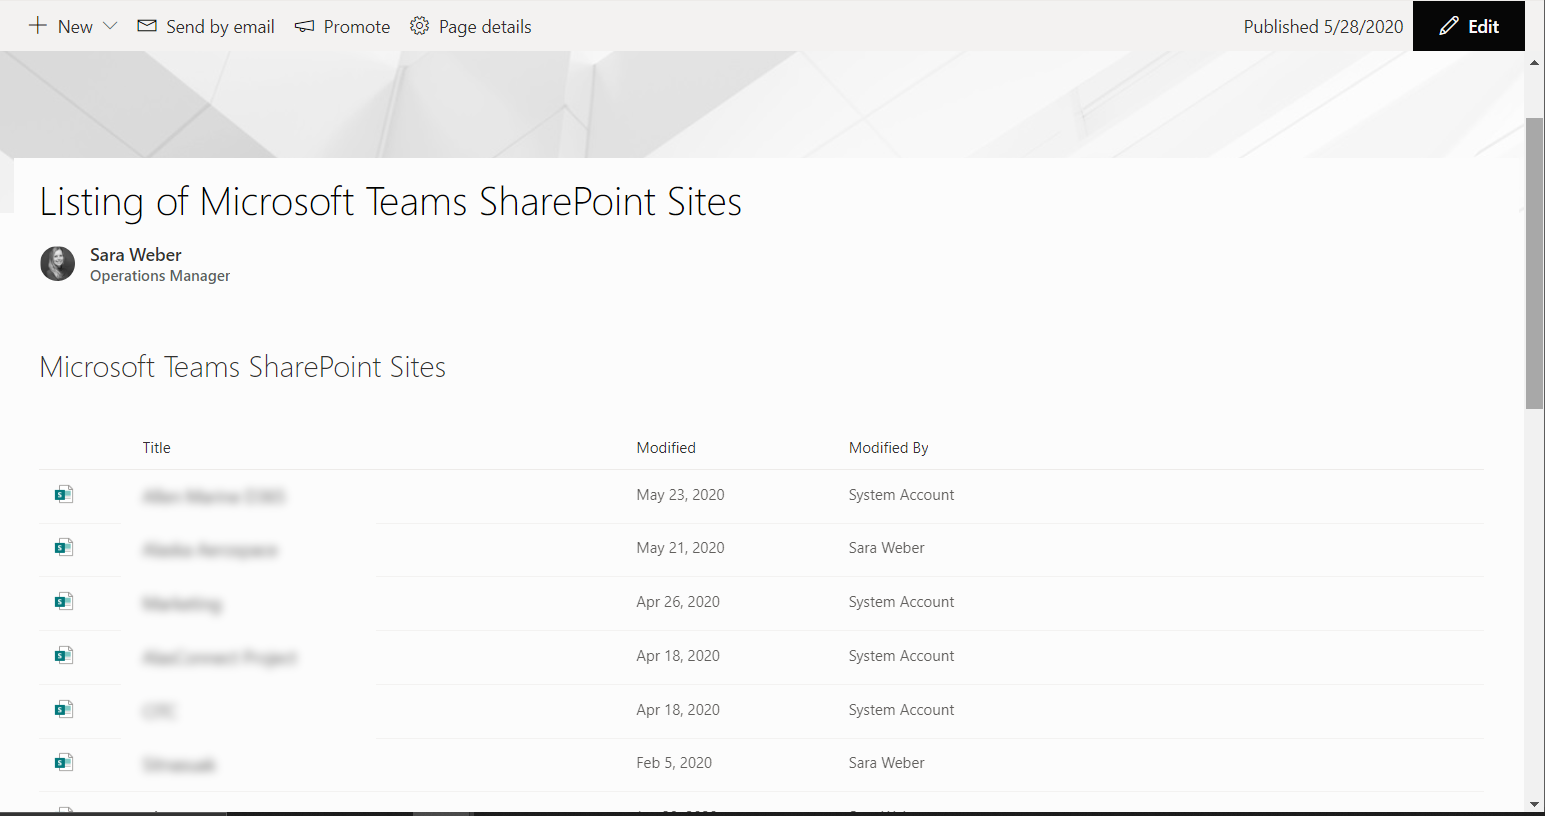 Microsoft Teams/Office 365 Groups SharePoint Sites listing